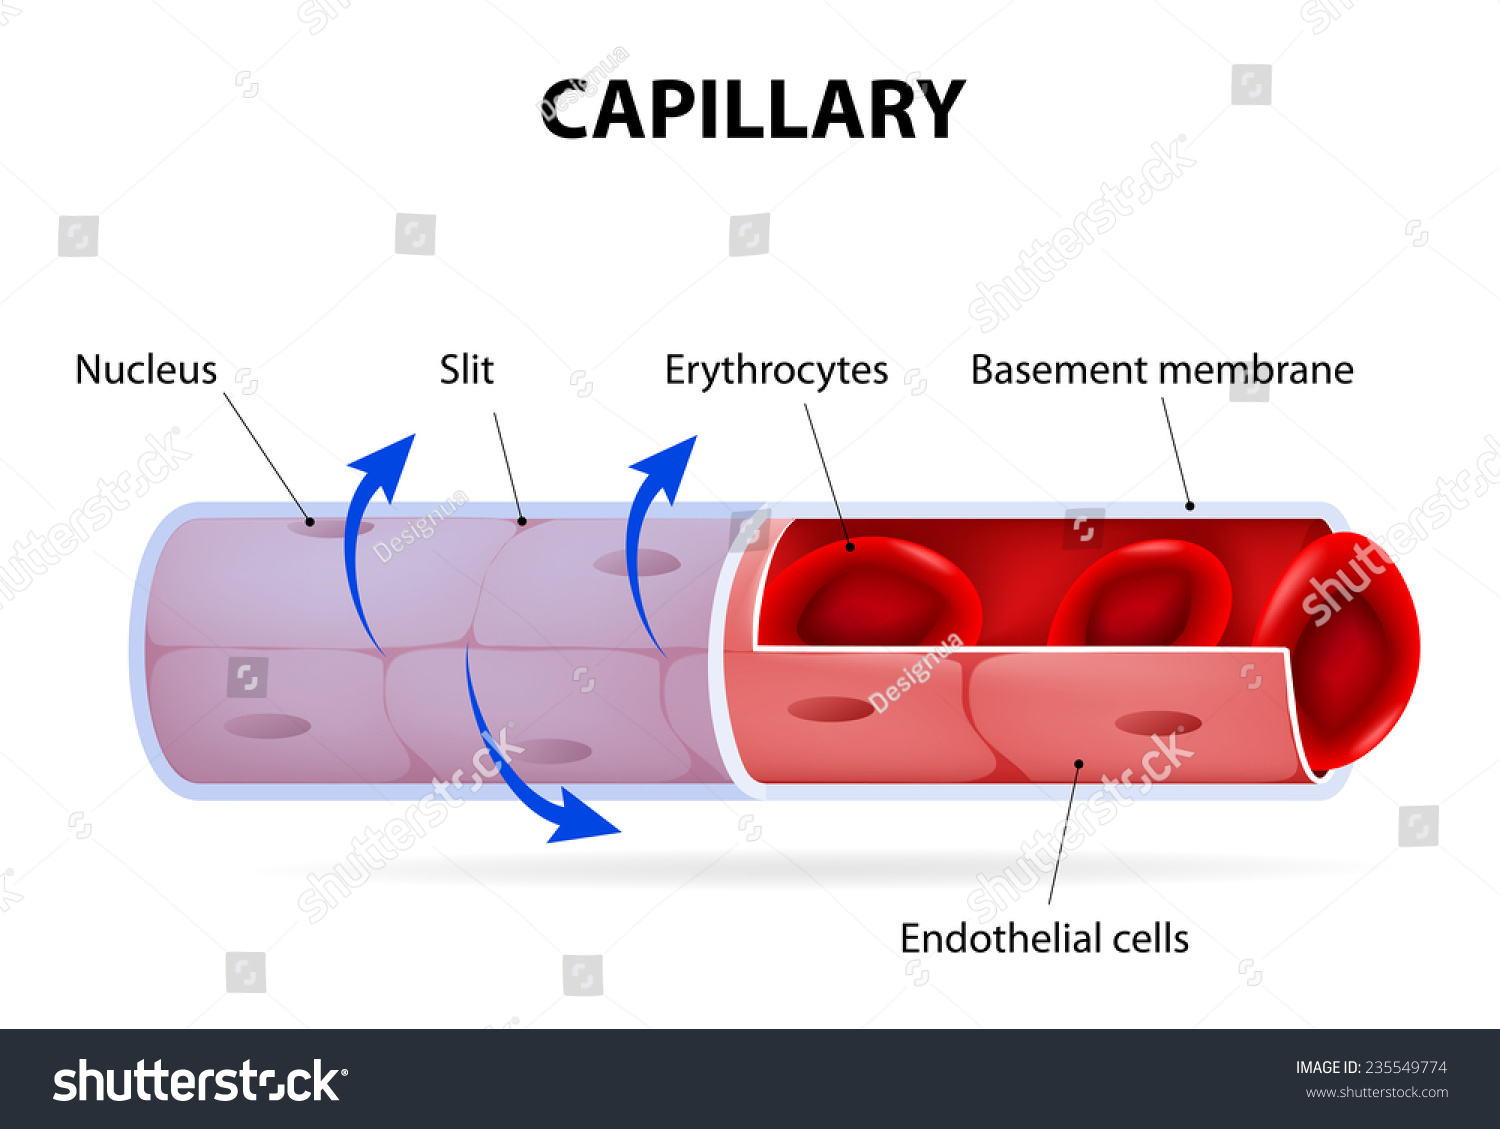 Capillary Diagram Labeled